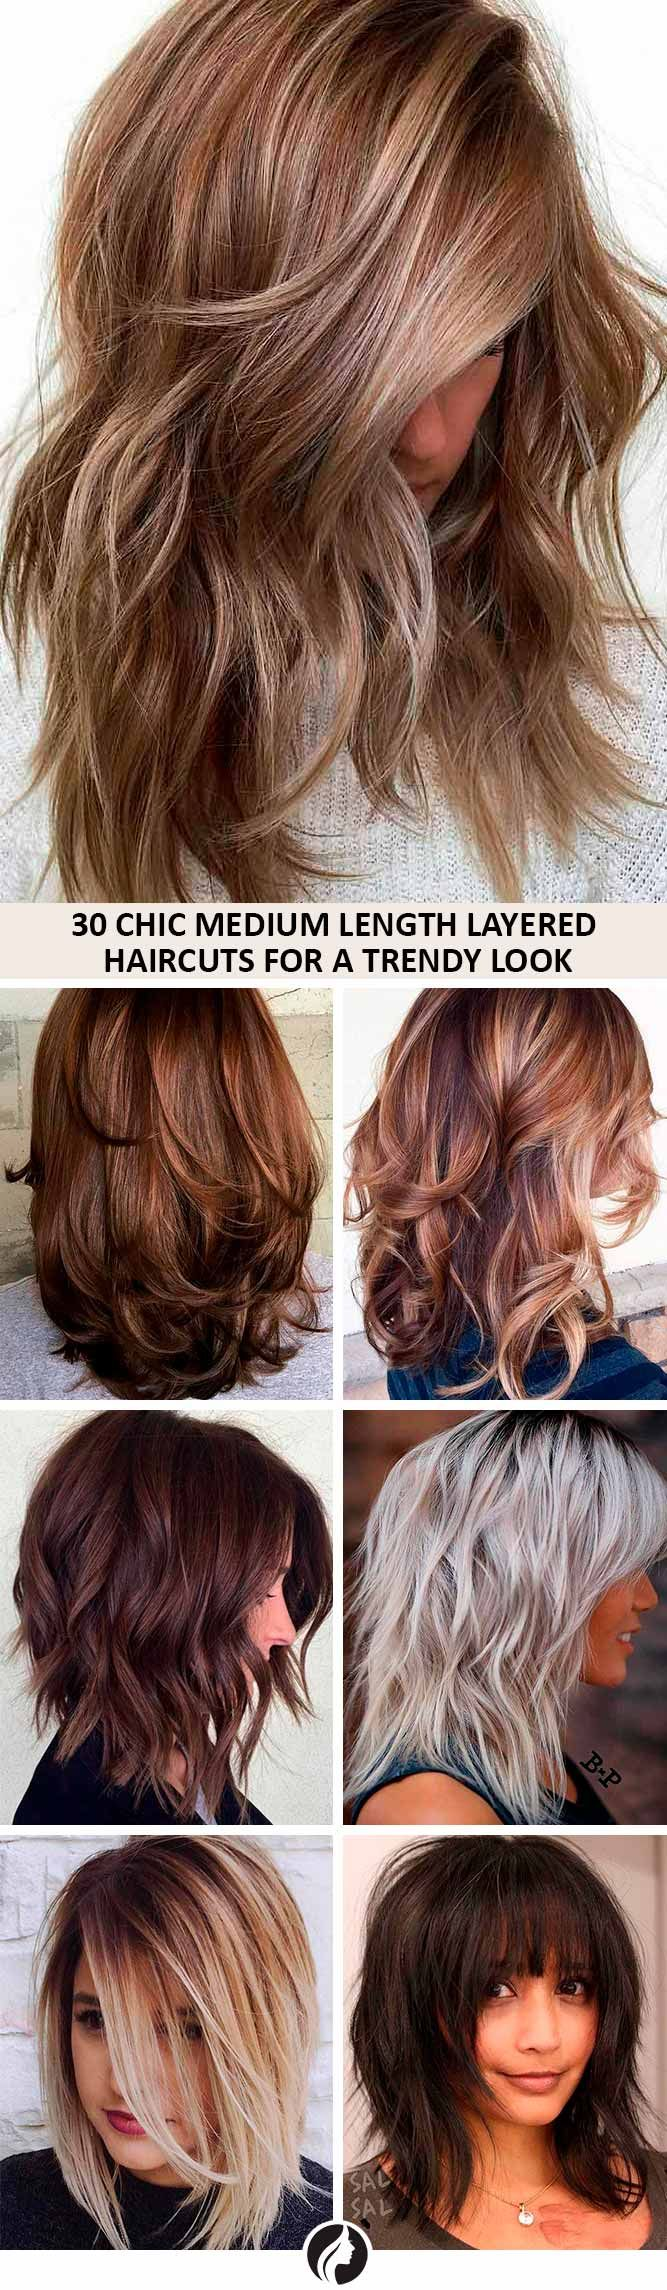 Cute do it yourself haircuts hair do it yourself haircut gallery ideas for women and man solutioingenieria Choice Image